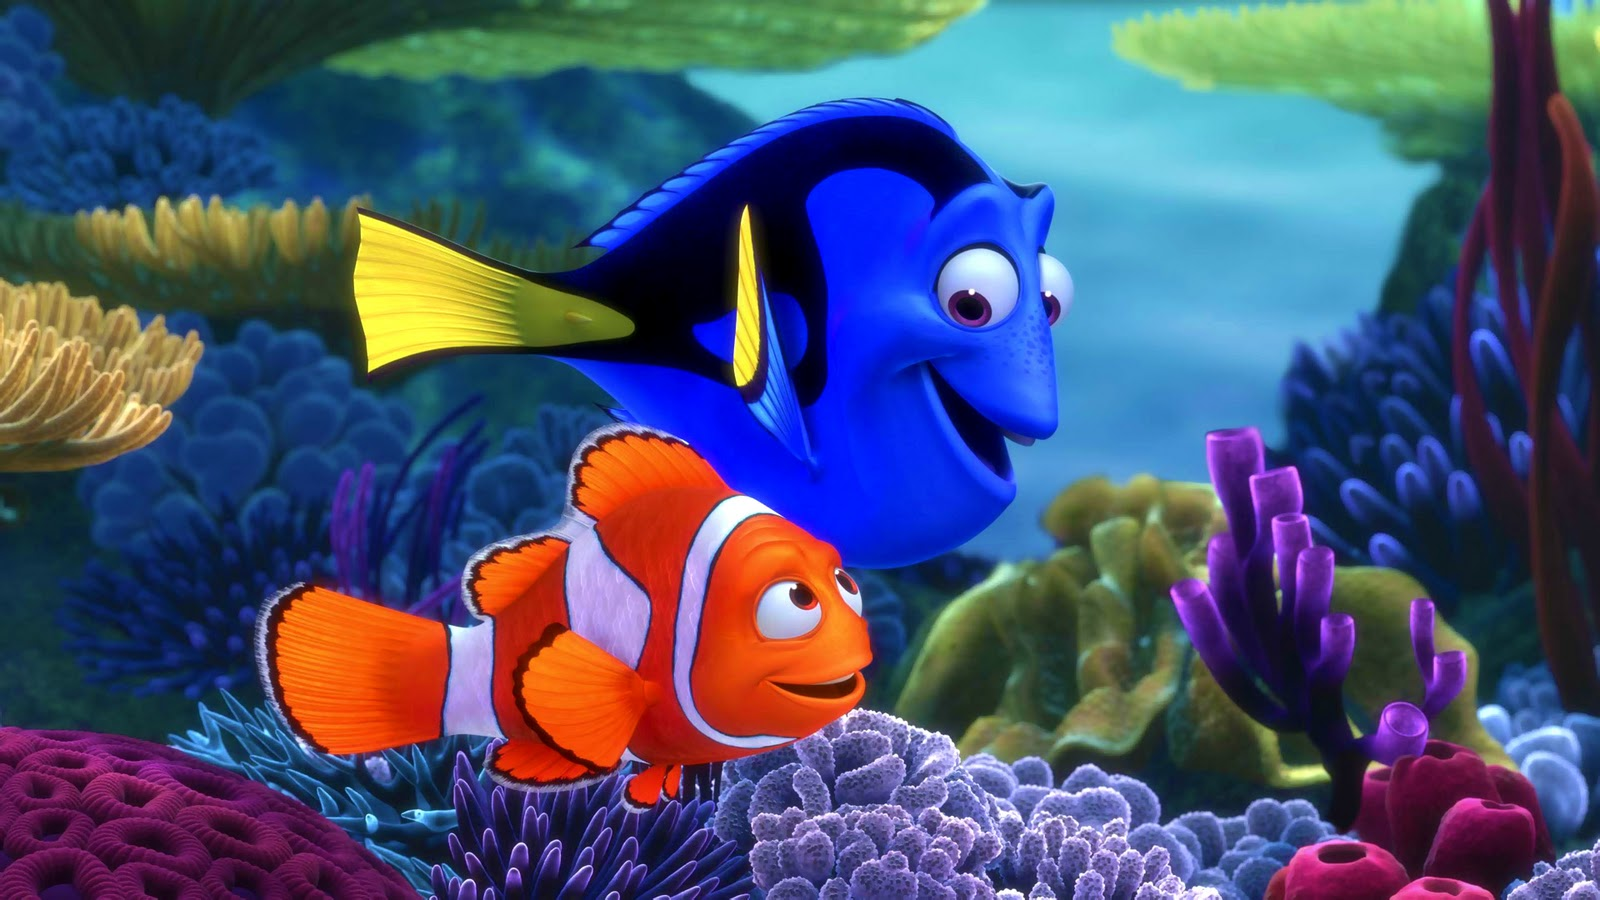 Finding Nemo 3D Movie Poster HD Wallpapers | Desktop Wallpapers